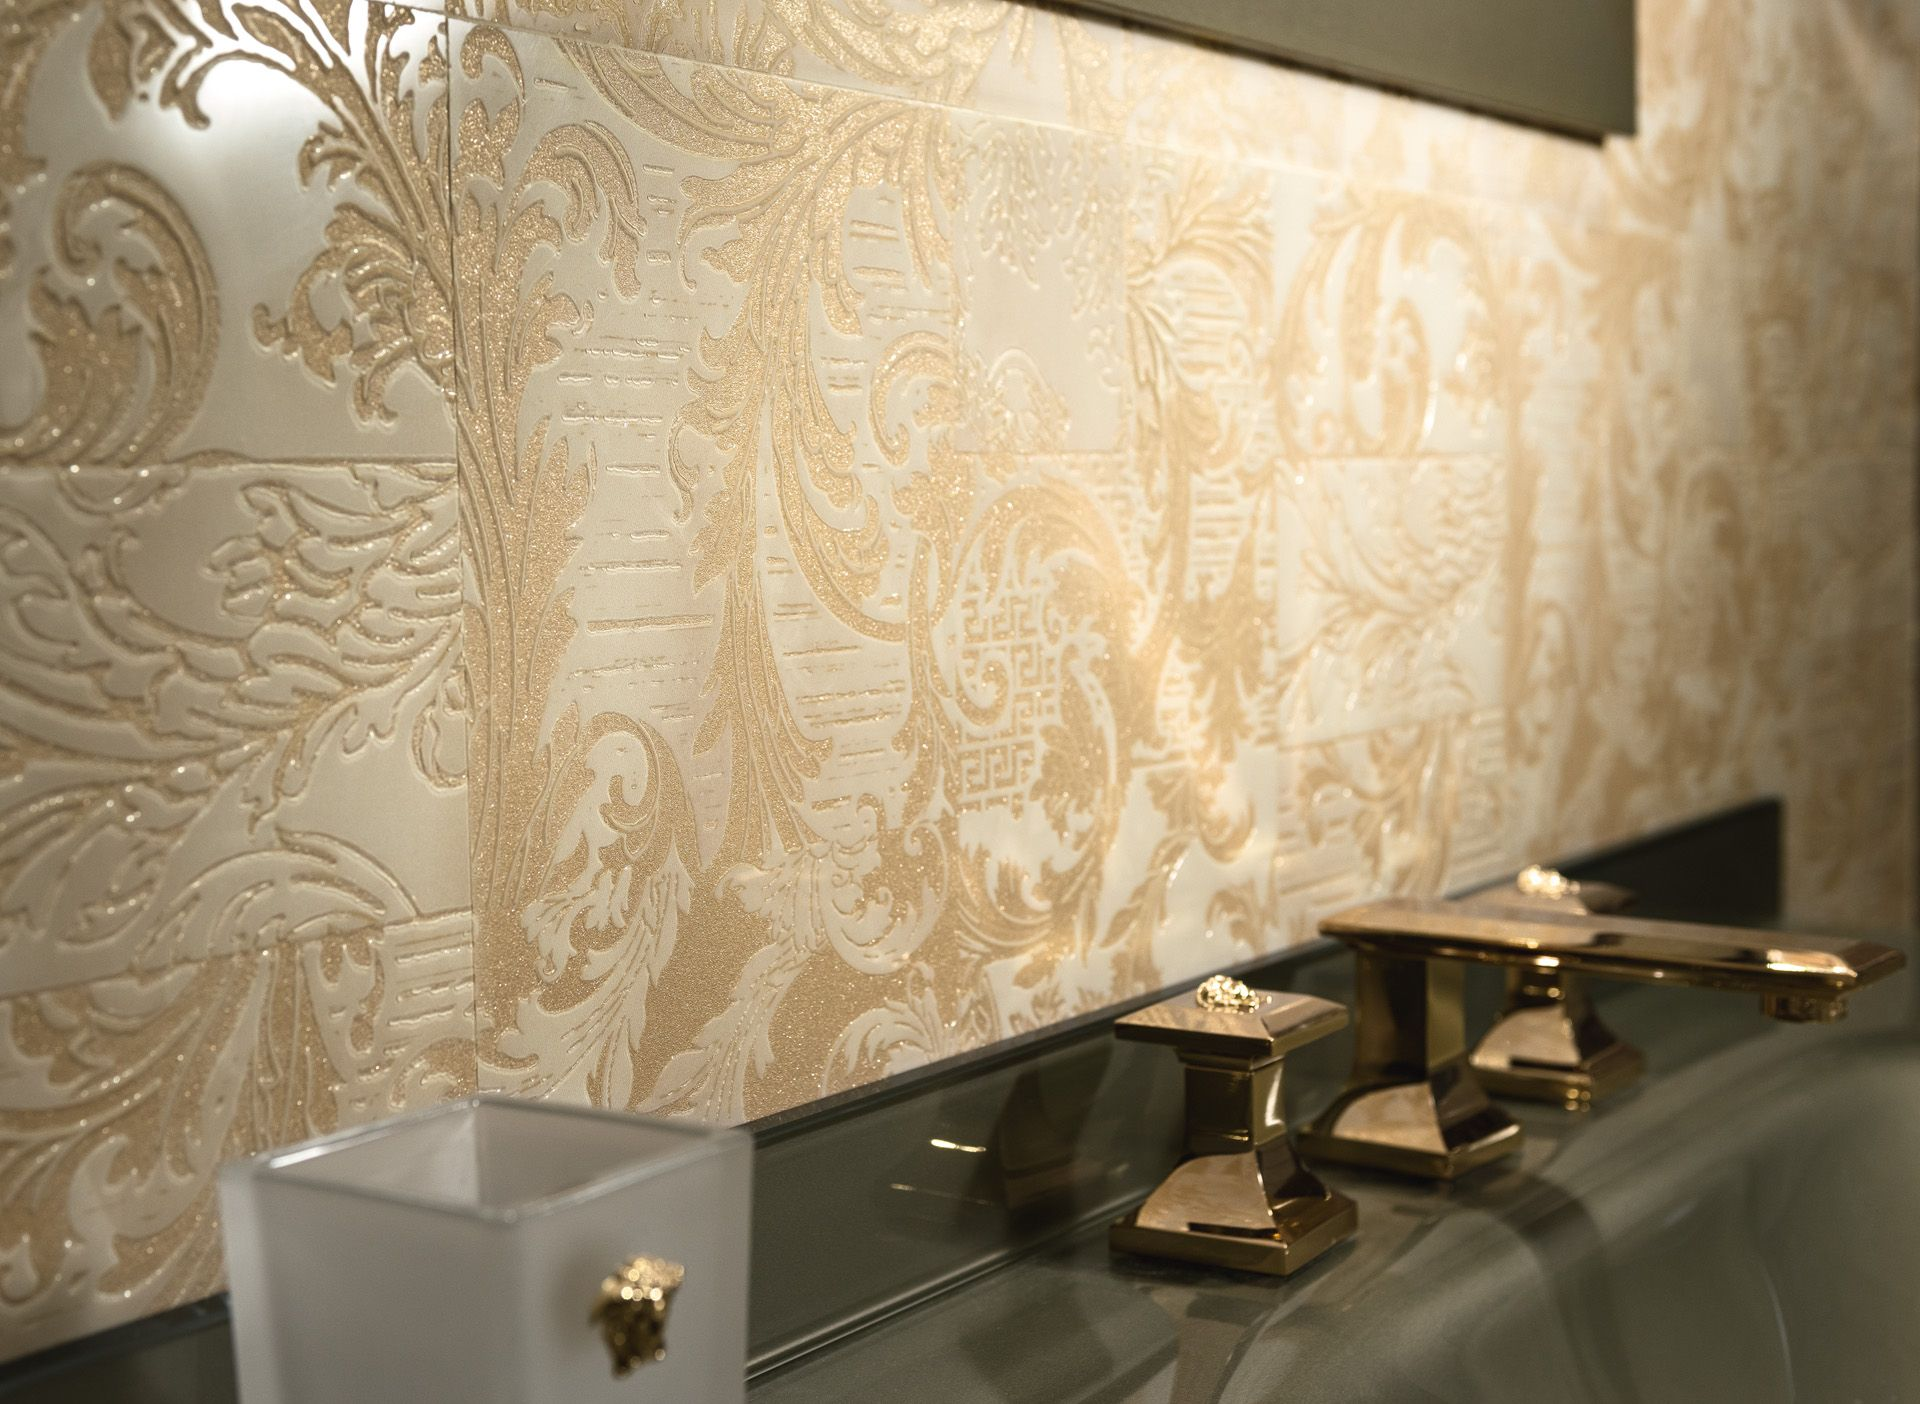 Or Gold Carrelage Salledebain Bathroom Marble Versace Design Interieur De Luxe Interieur De Luxe Idees De Design D Interieur